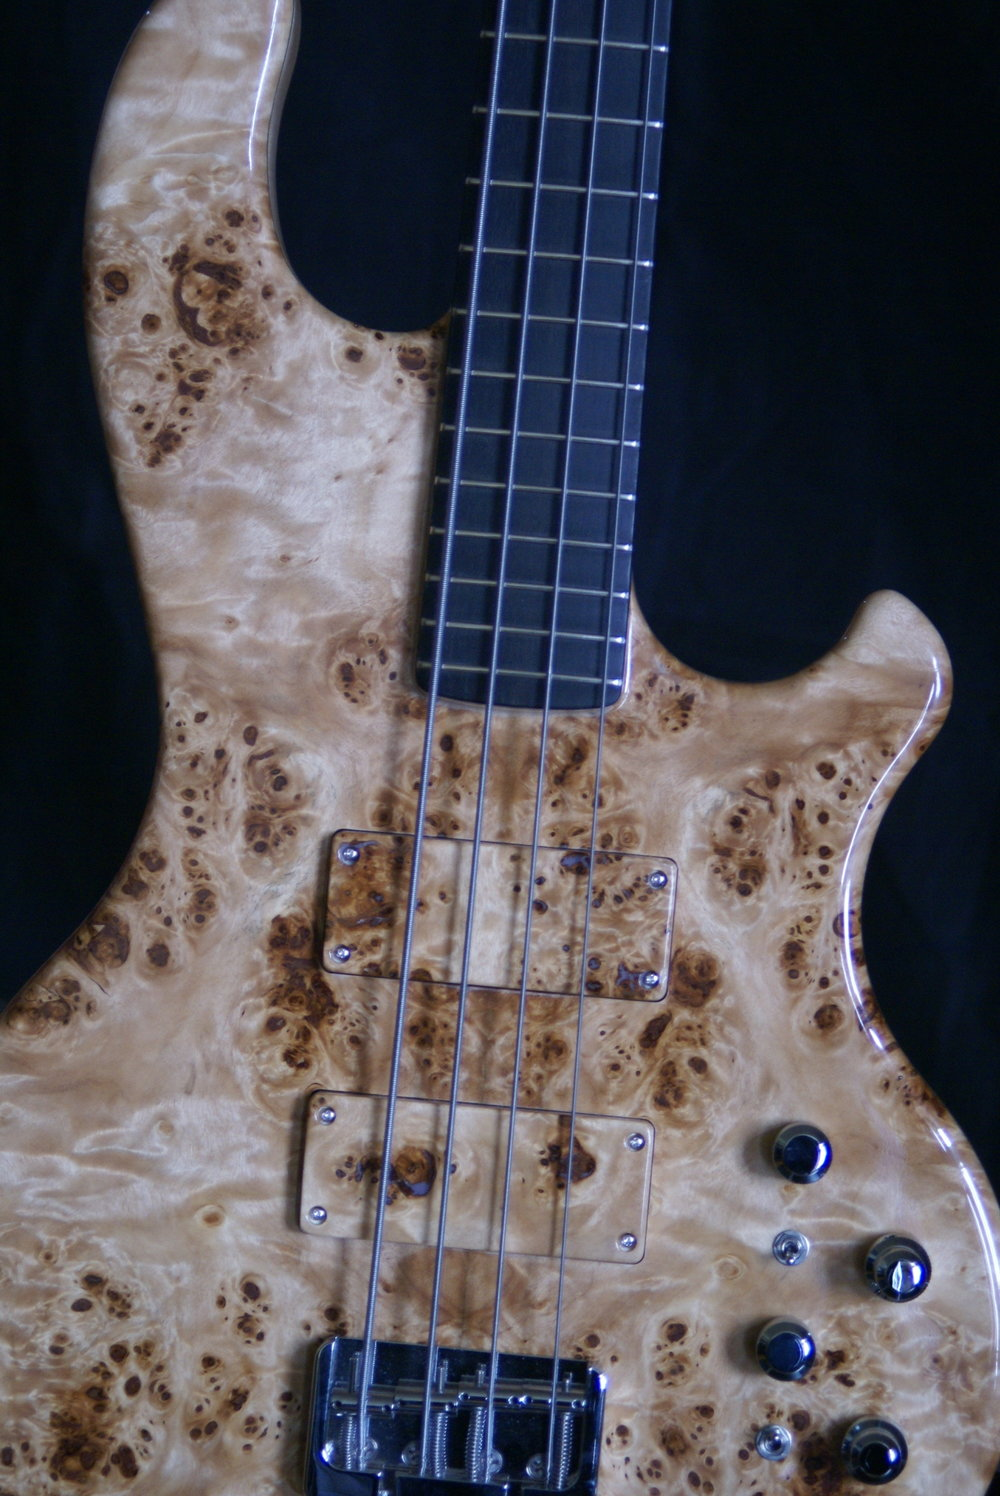 Inlaw 424 Motherbucker - This beauty comes with a poplar burl top with matching pickups covers